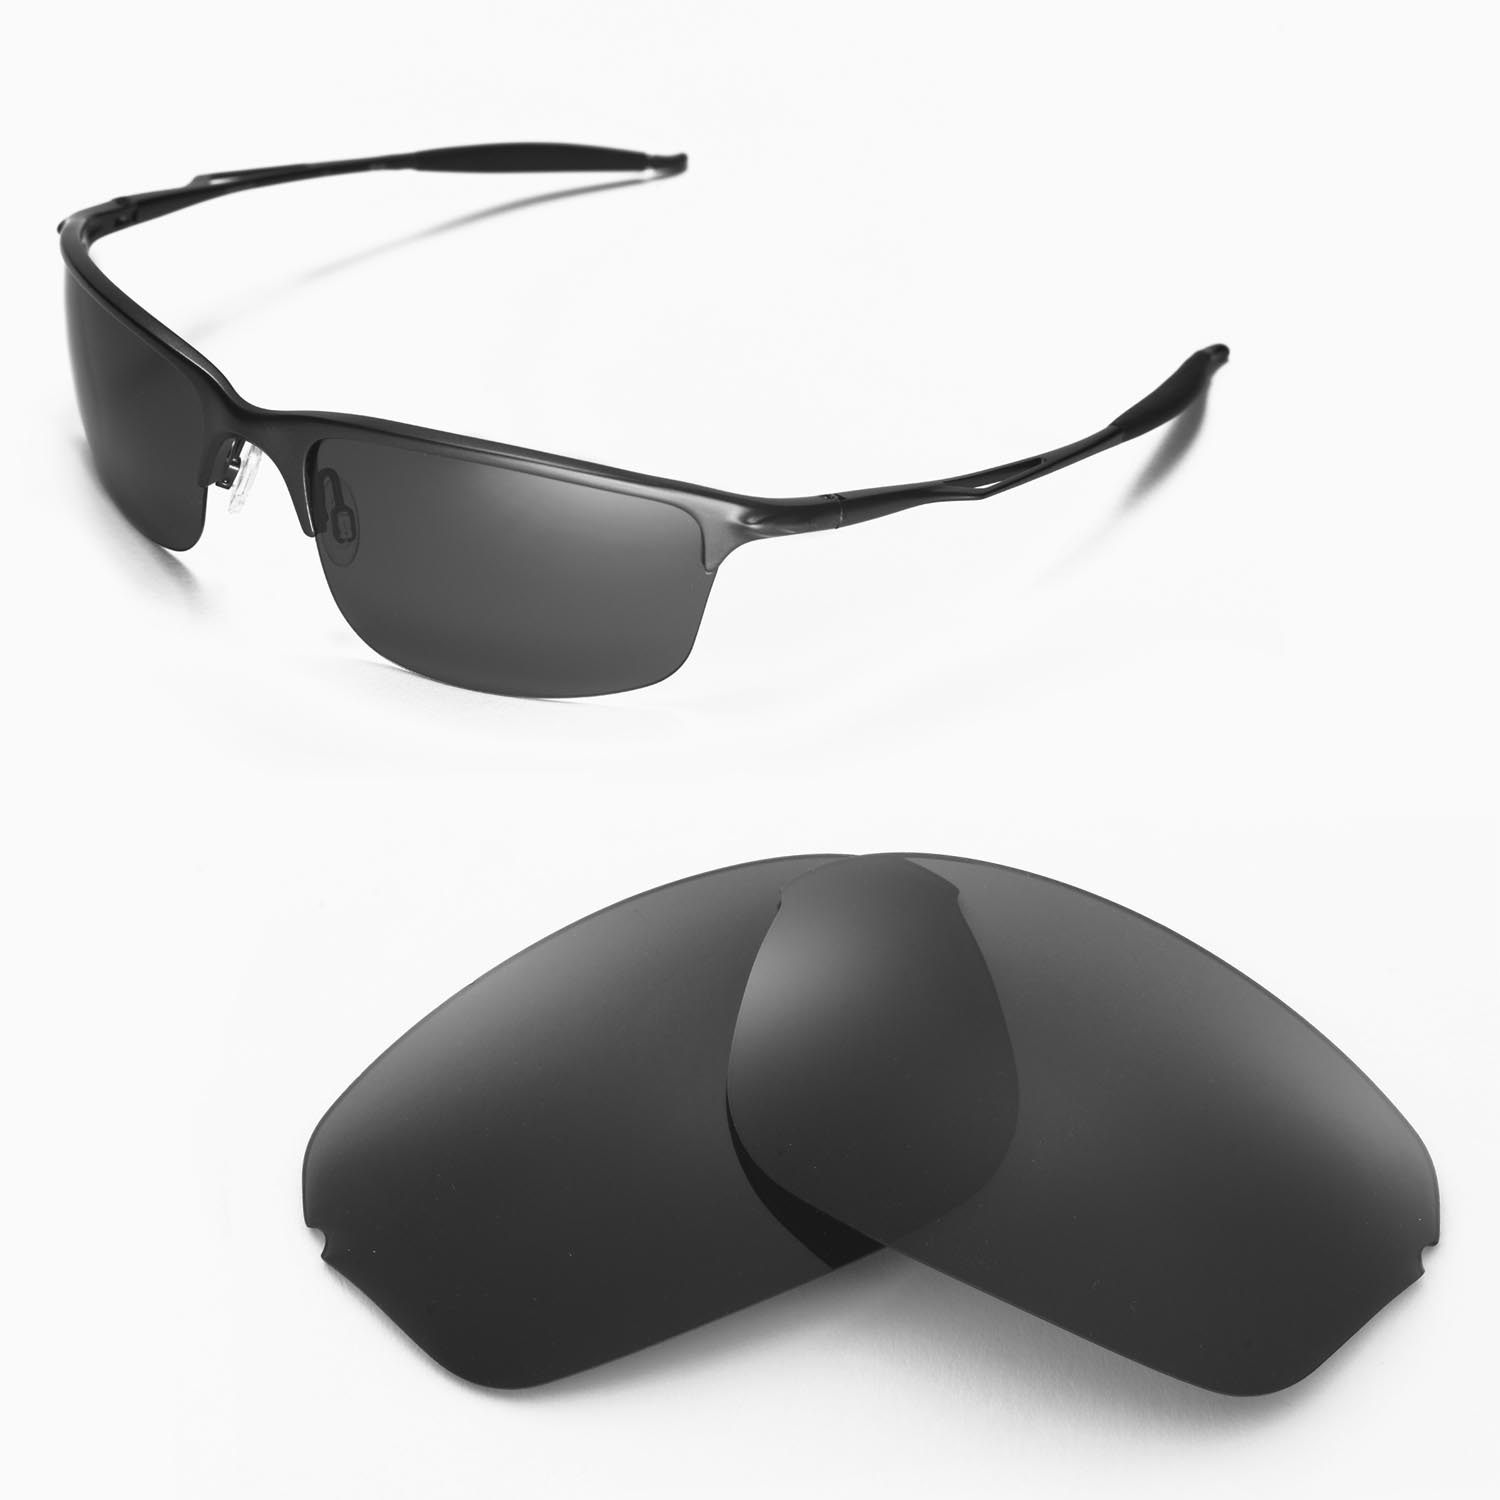 5424fa90fc1e Details about New Walleva Polarized Black Replacement Lenses For Oakley  Half Wire 2.0